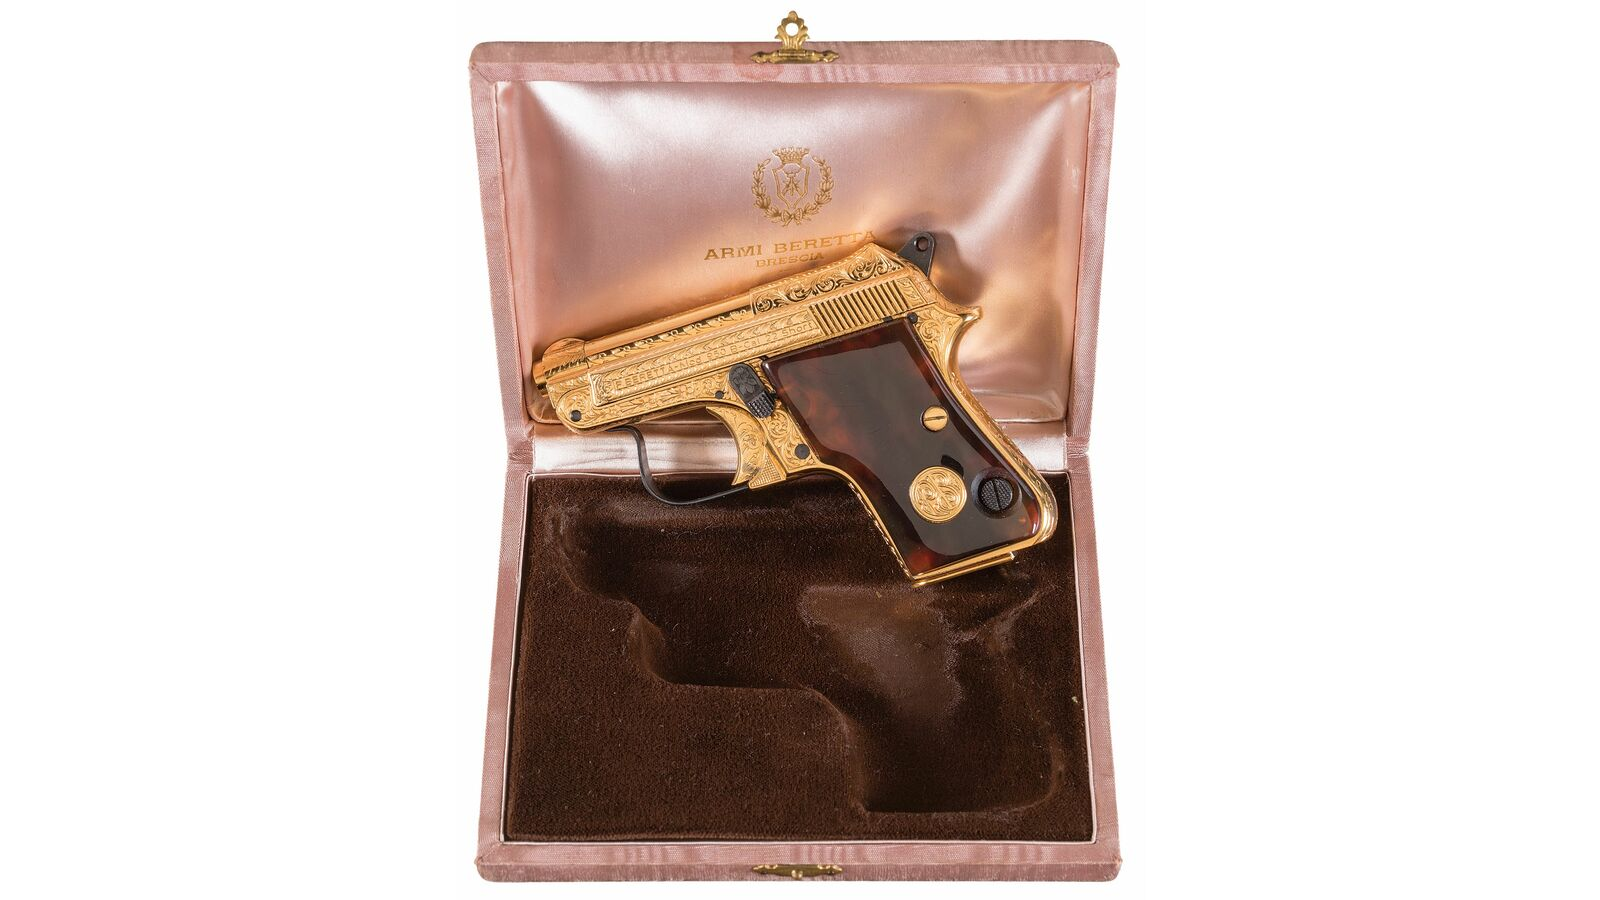 Gold/Engraved Beretta Model 950B Deluxe Pistol with Case